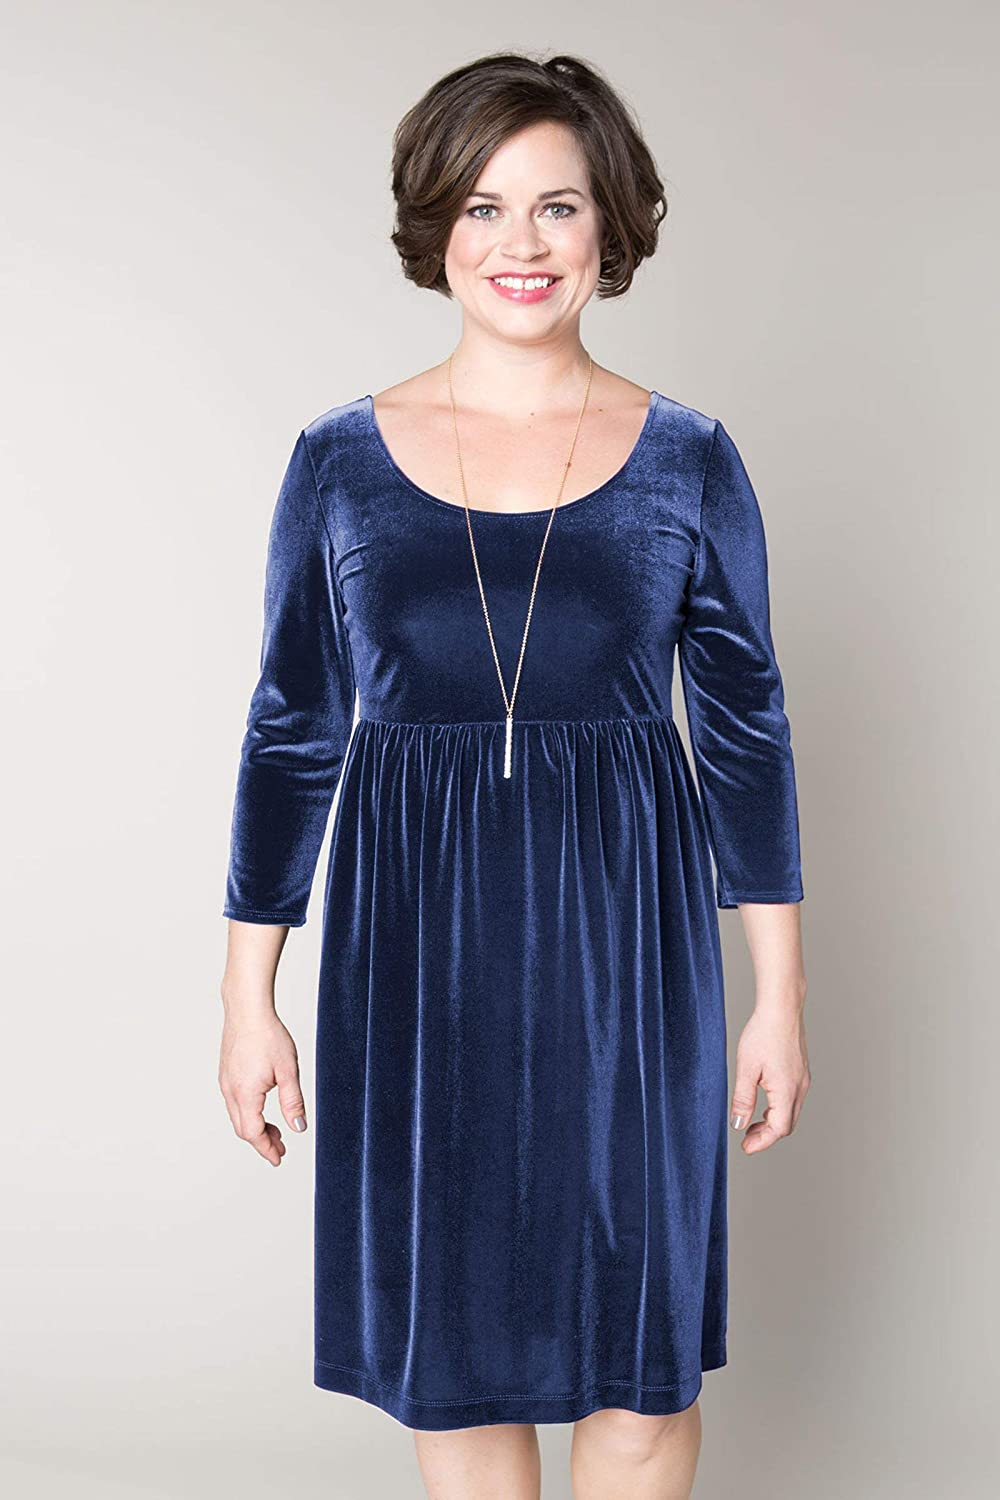 Velvet Empire Waist Dress Comfortable Luxurious Customizable Design Details and Sizing